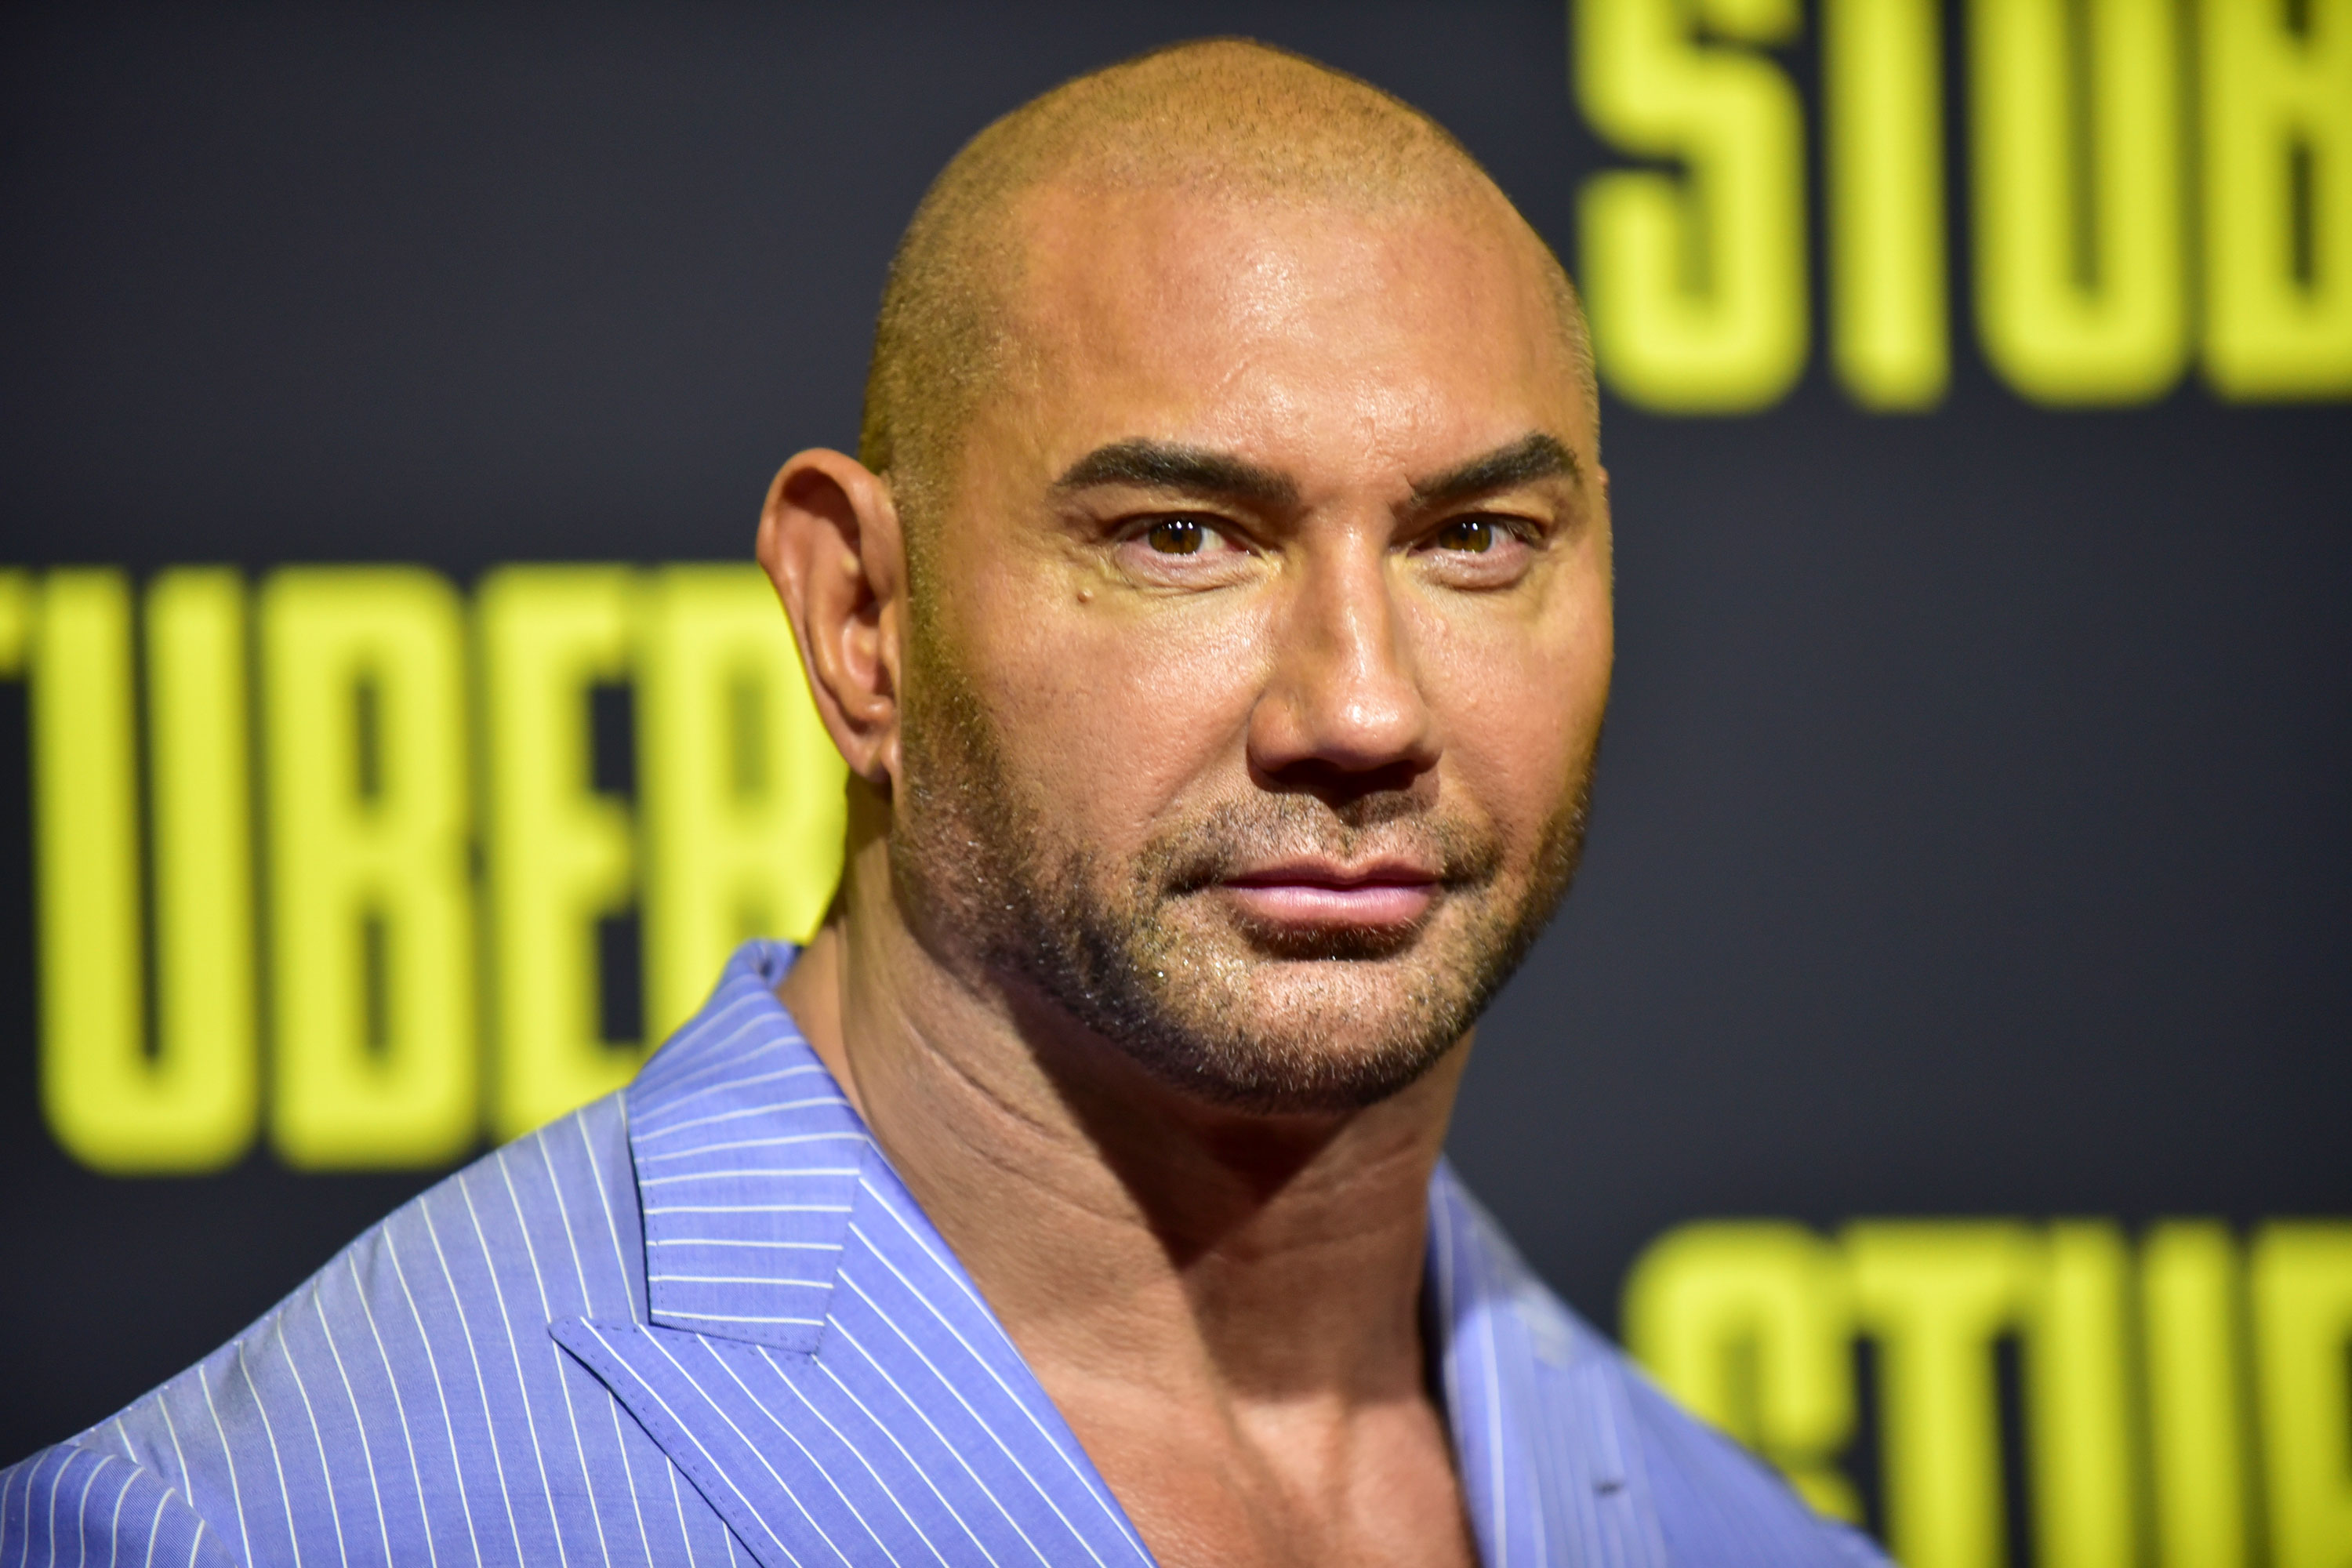 Actor Dave Bautista offers $20,000 in case of manatee scraped with word 'TRUMP'